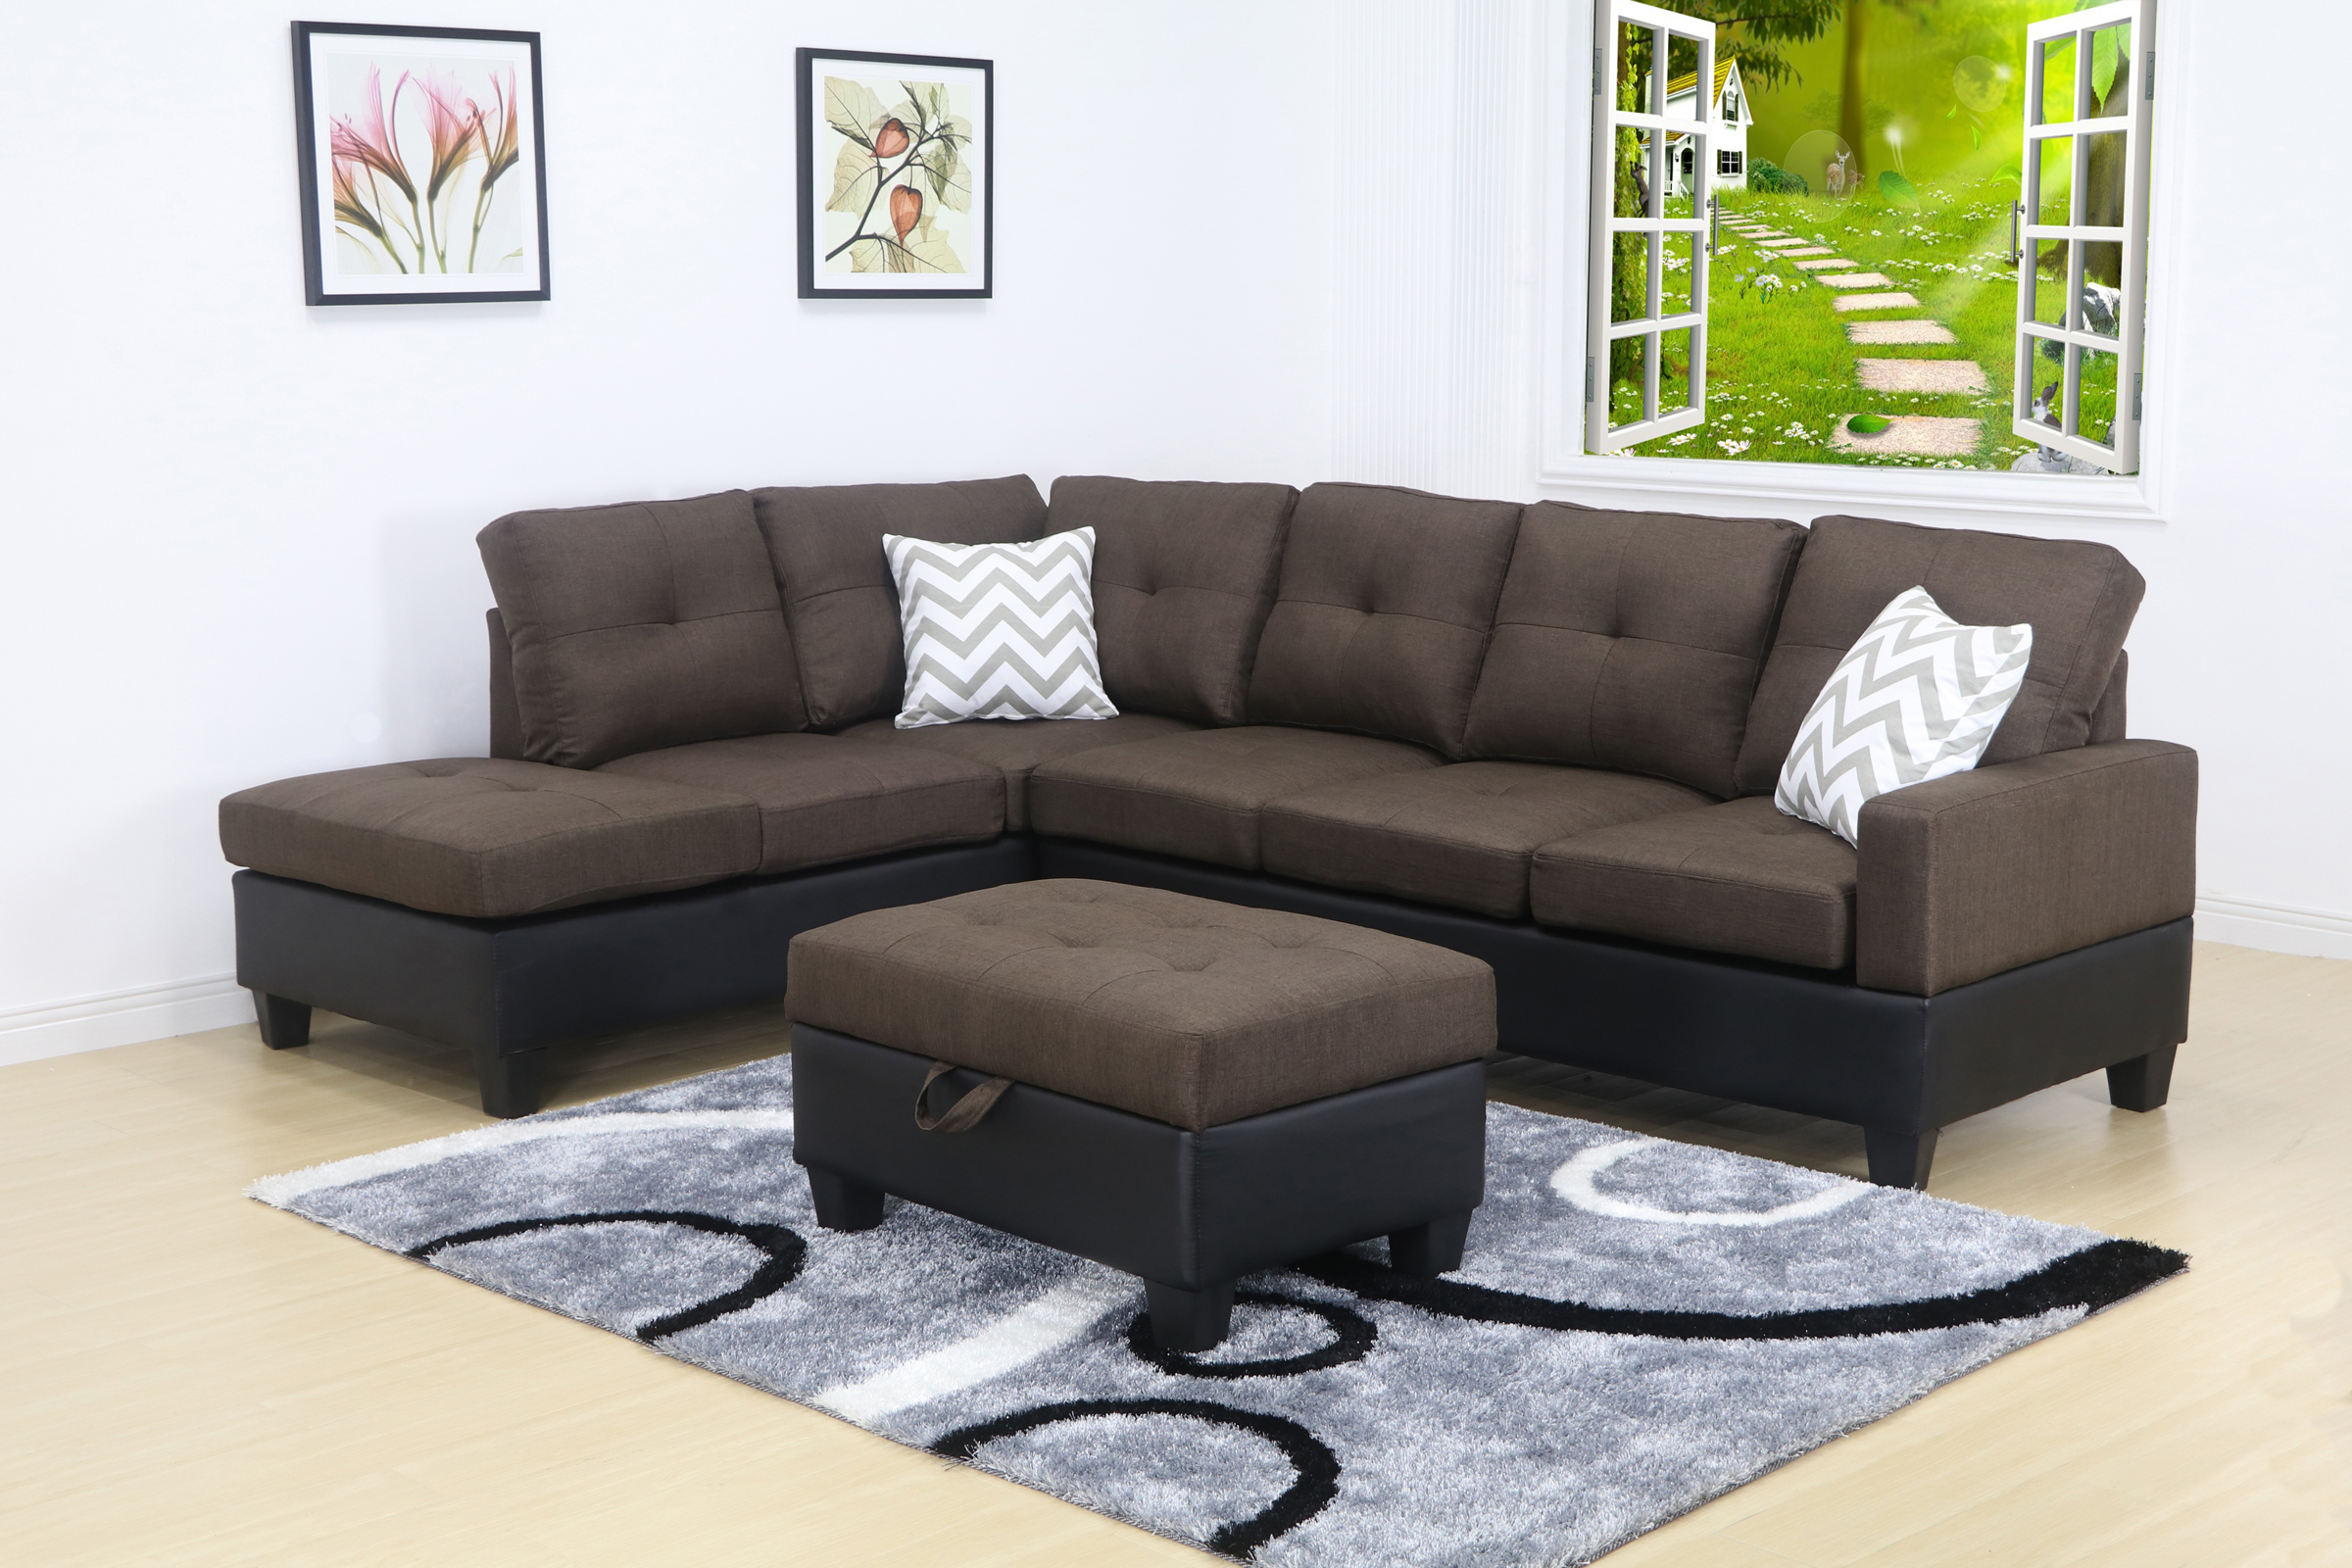 Evelyn Brown Linen Left Facing Modern Living Room Sectional Sofa set  sc 1 st  Walmart : rooms with sectional sofas - Sectionals, Sofas & Couches